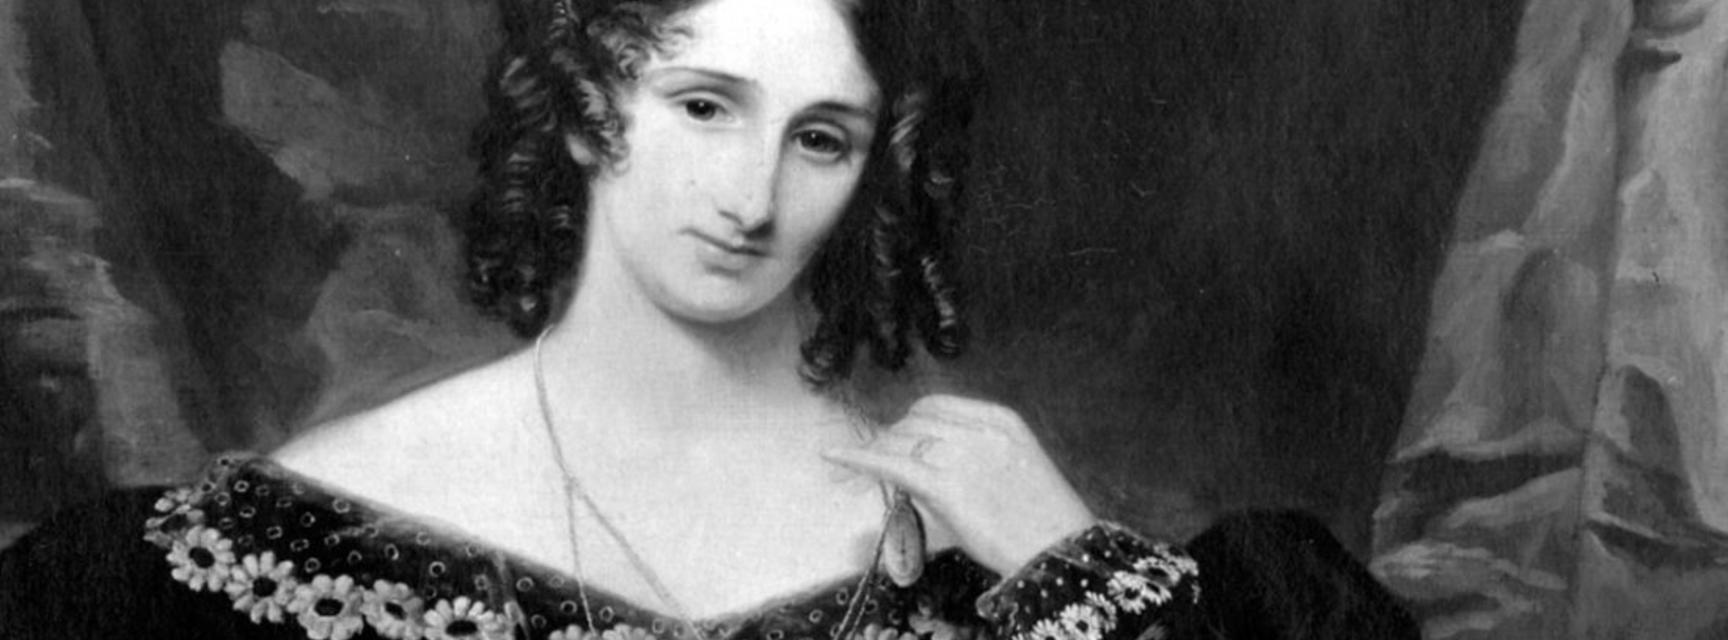 Black and white painted portrait of Mary Shelley